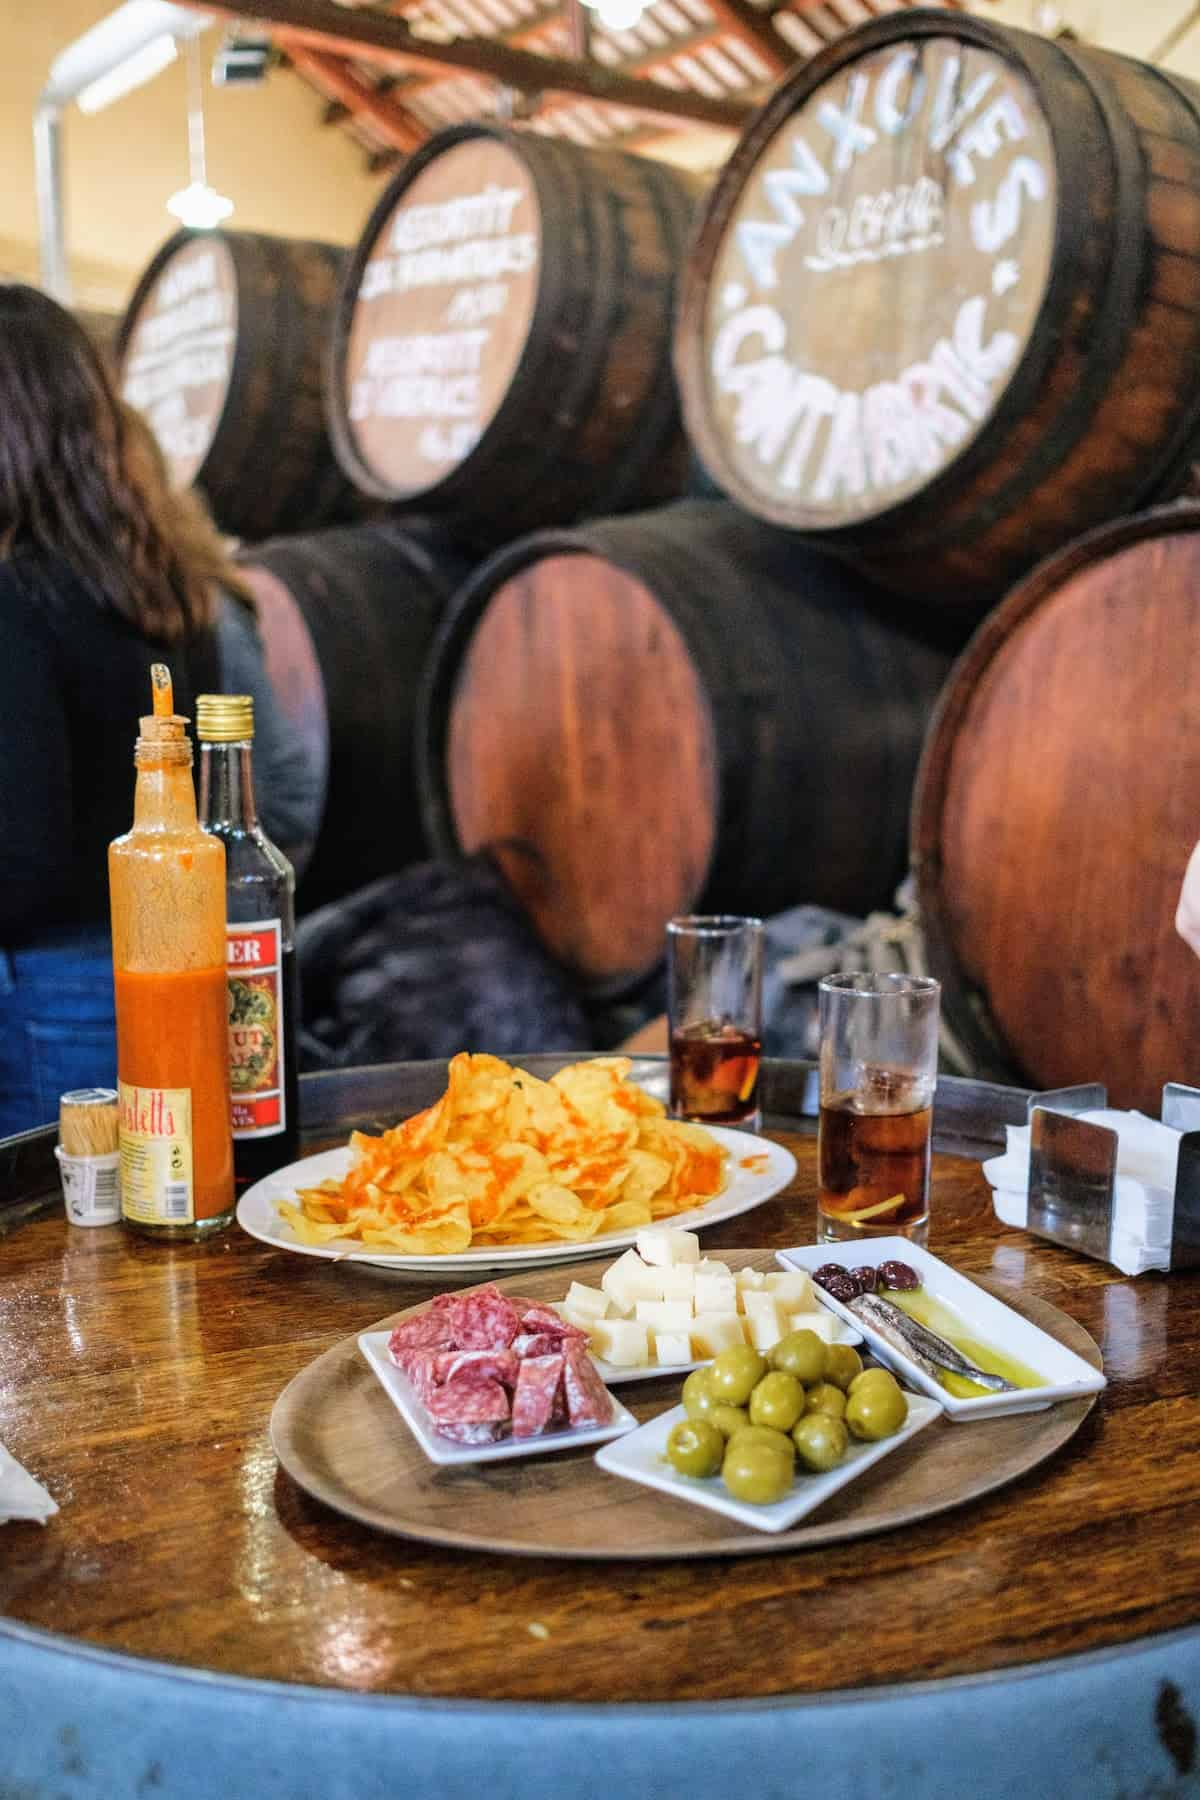 Aperitif tapas spread of cured meat, olives, cheese cubes, anchovies, potato chips, and vermouth set atop a wooden barrel.